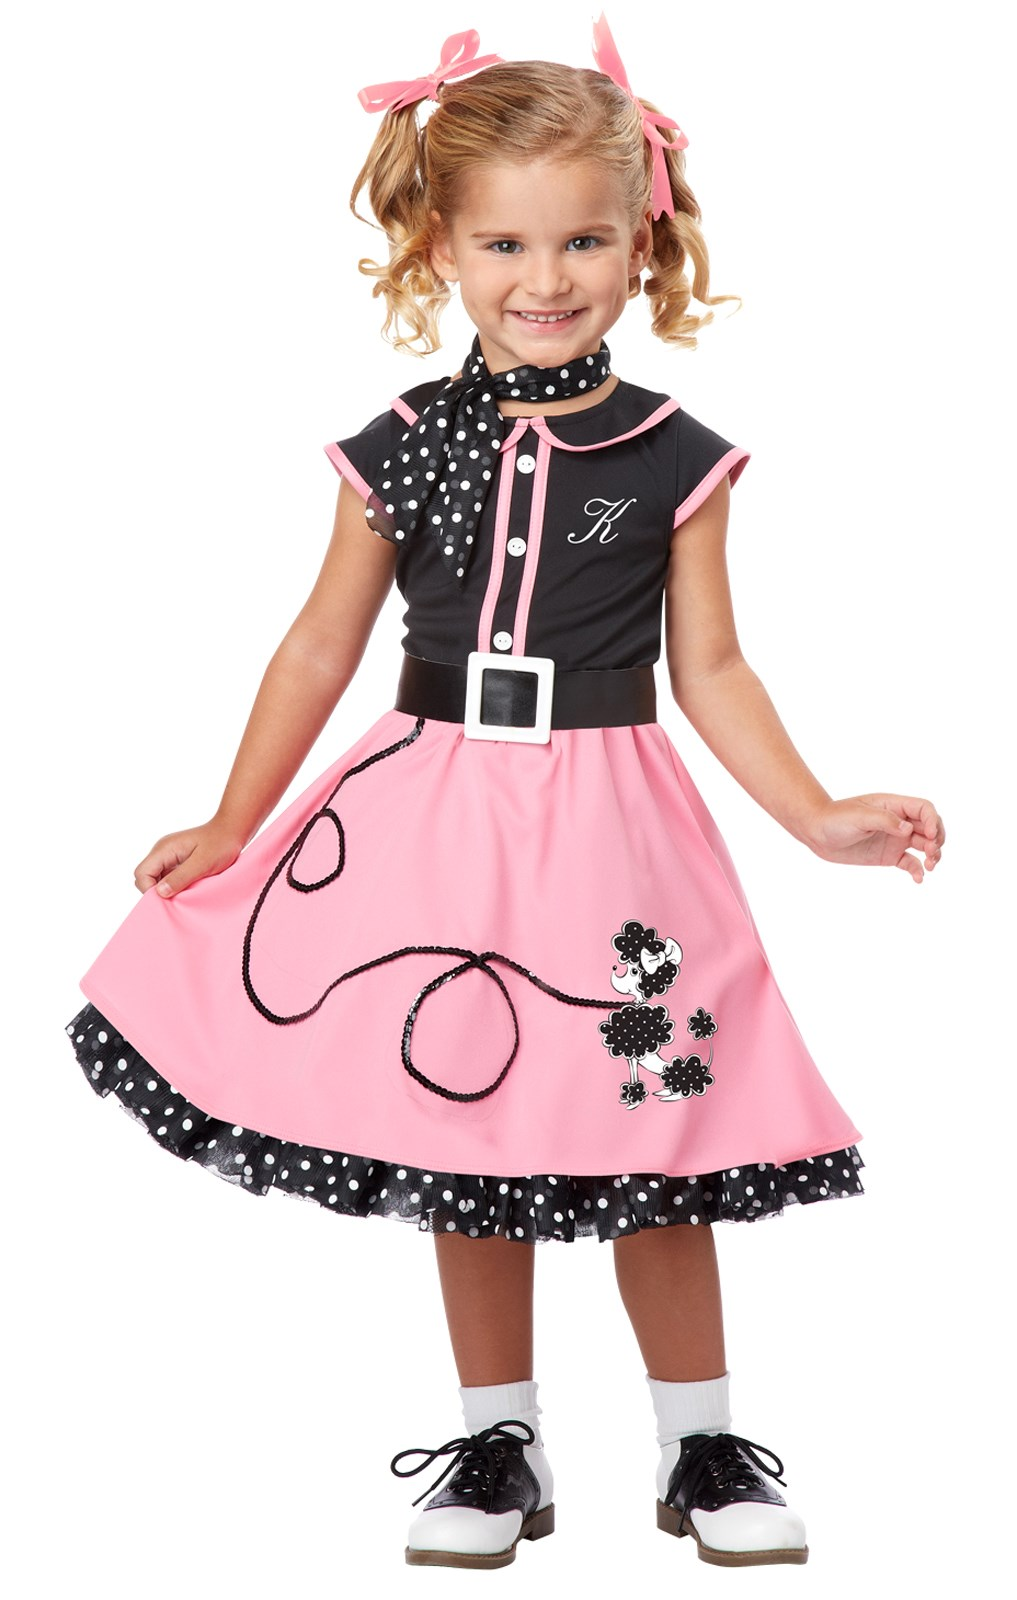 50s Poodle Cutie Toddler / Child Costume Toddler (3T-4T)